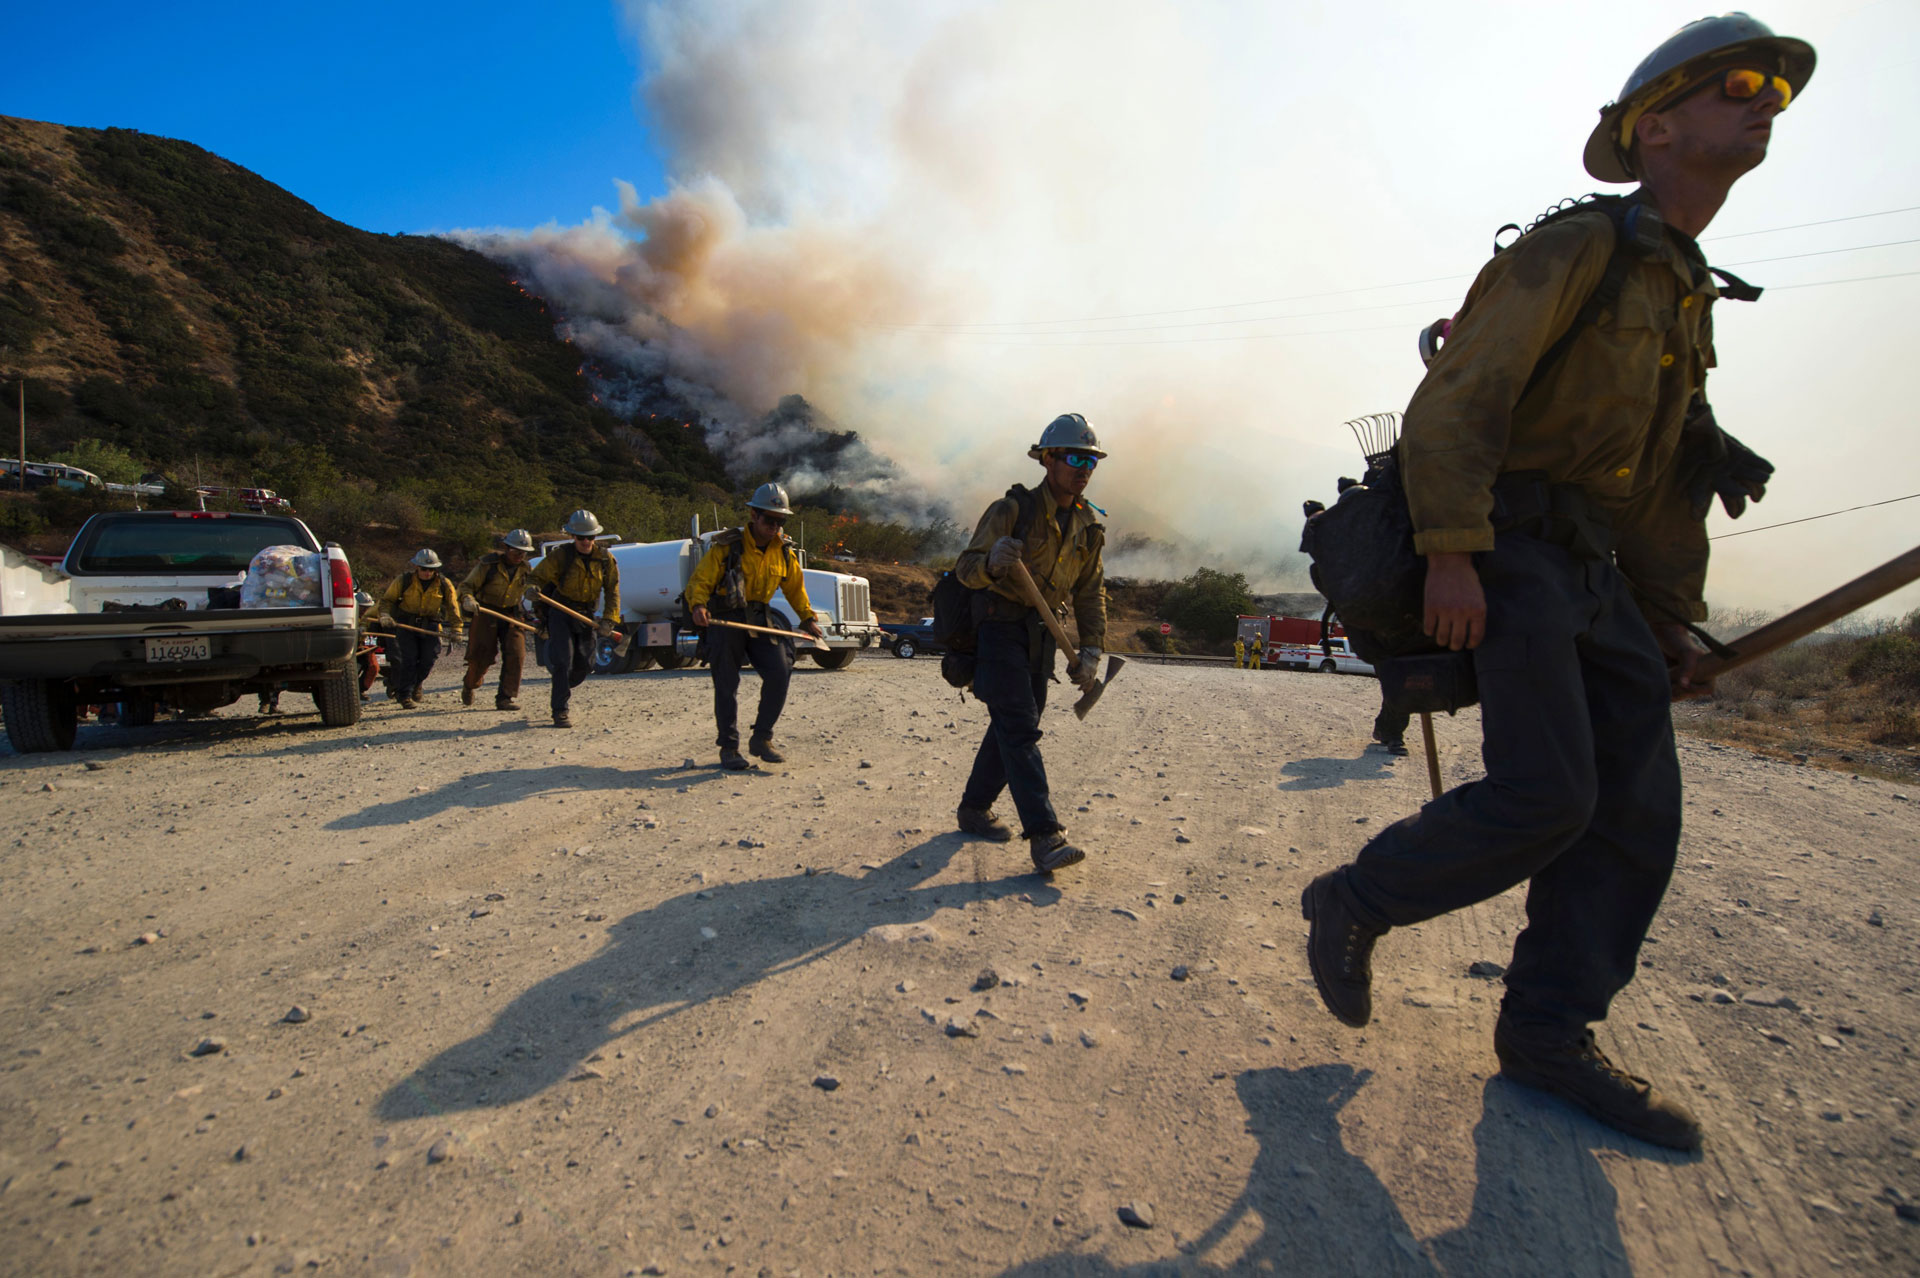 Firefighters prepare to clear a hot spot at the Blue Cut Fire near Wrightwood on August 17, 2016. The blaze destroyed nearly 100 homes and forced the evacuation of 80,000 people in San Bernardino County.